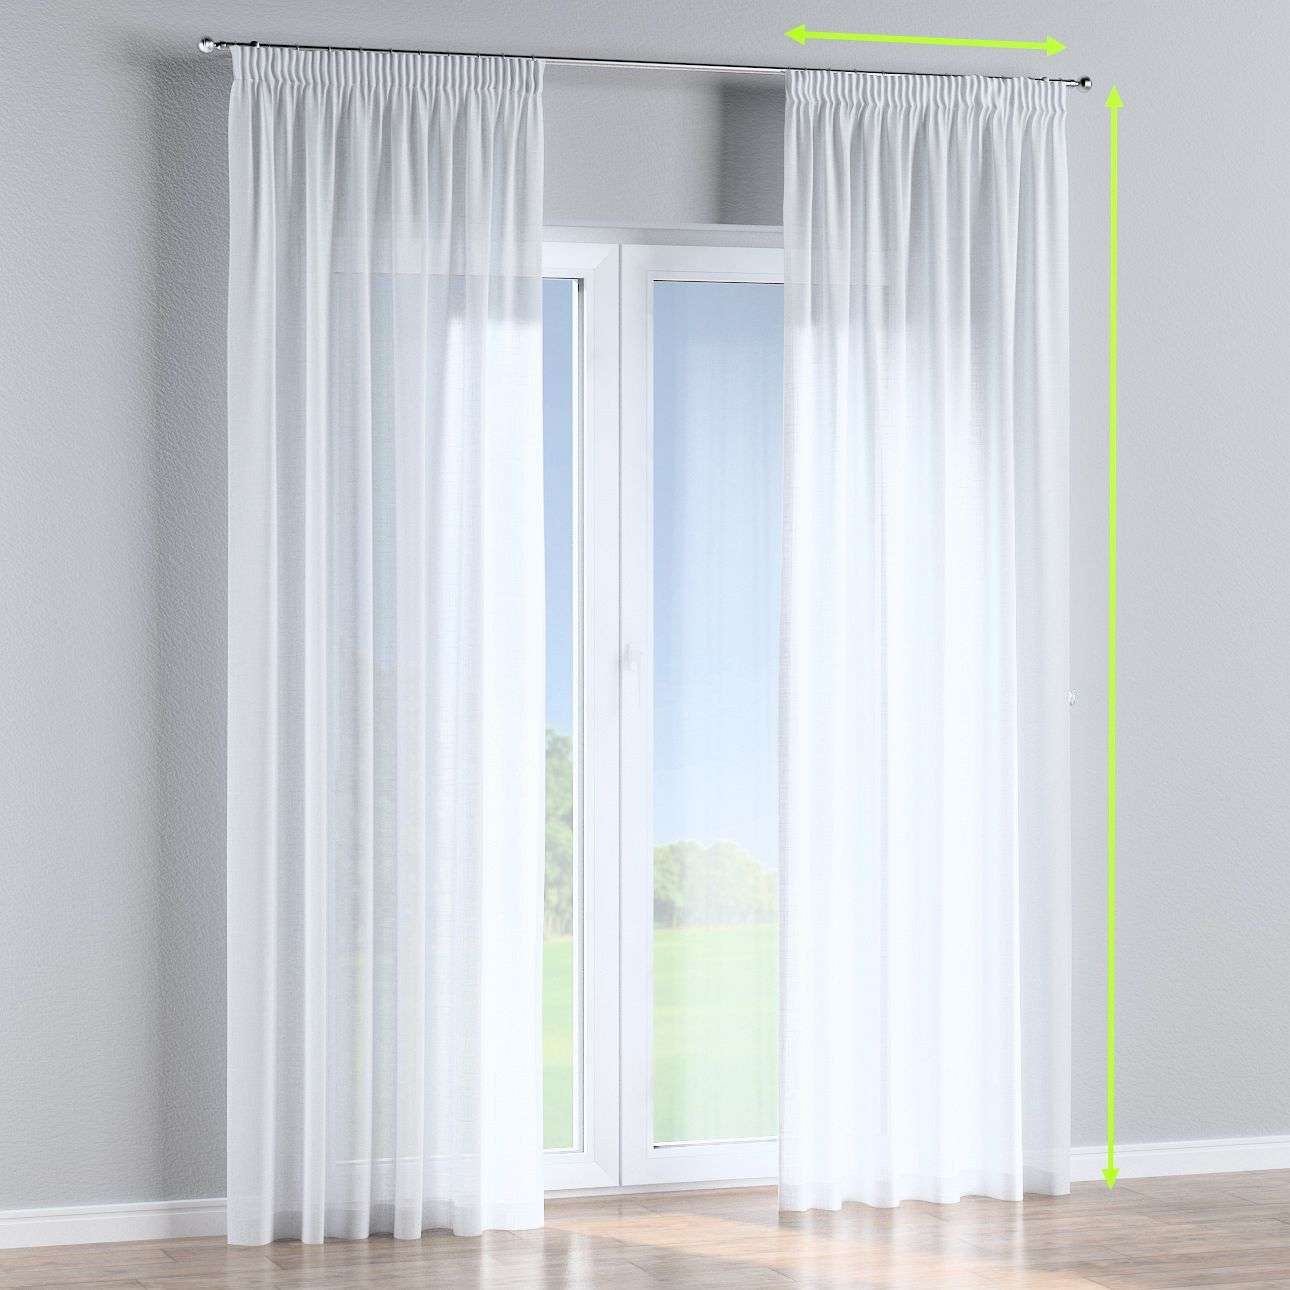 Pencil pleat lined curtains in collection Romantica, fabric: 128-77